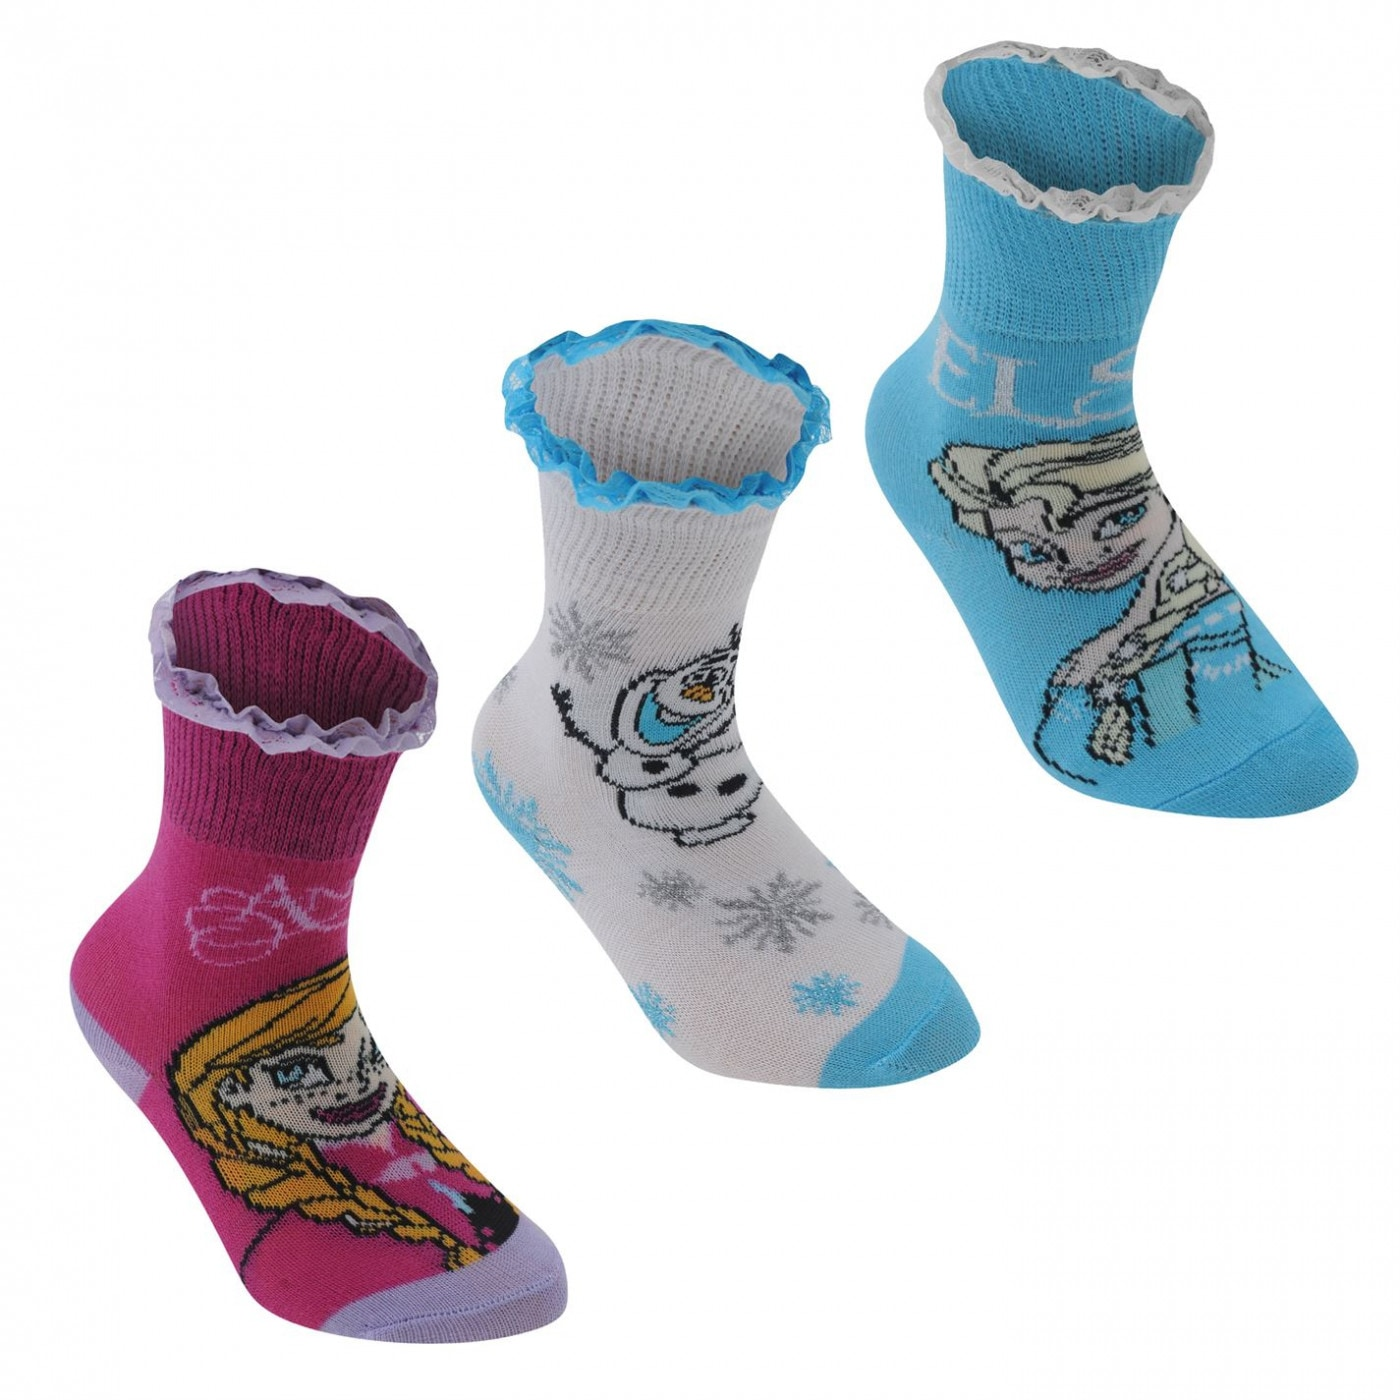 Disney Crew Socks 3 Pack Babies